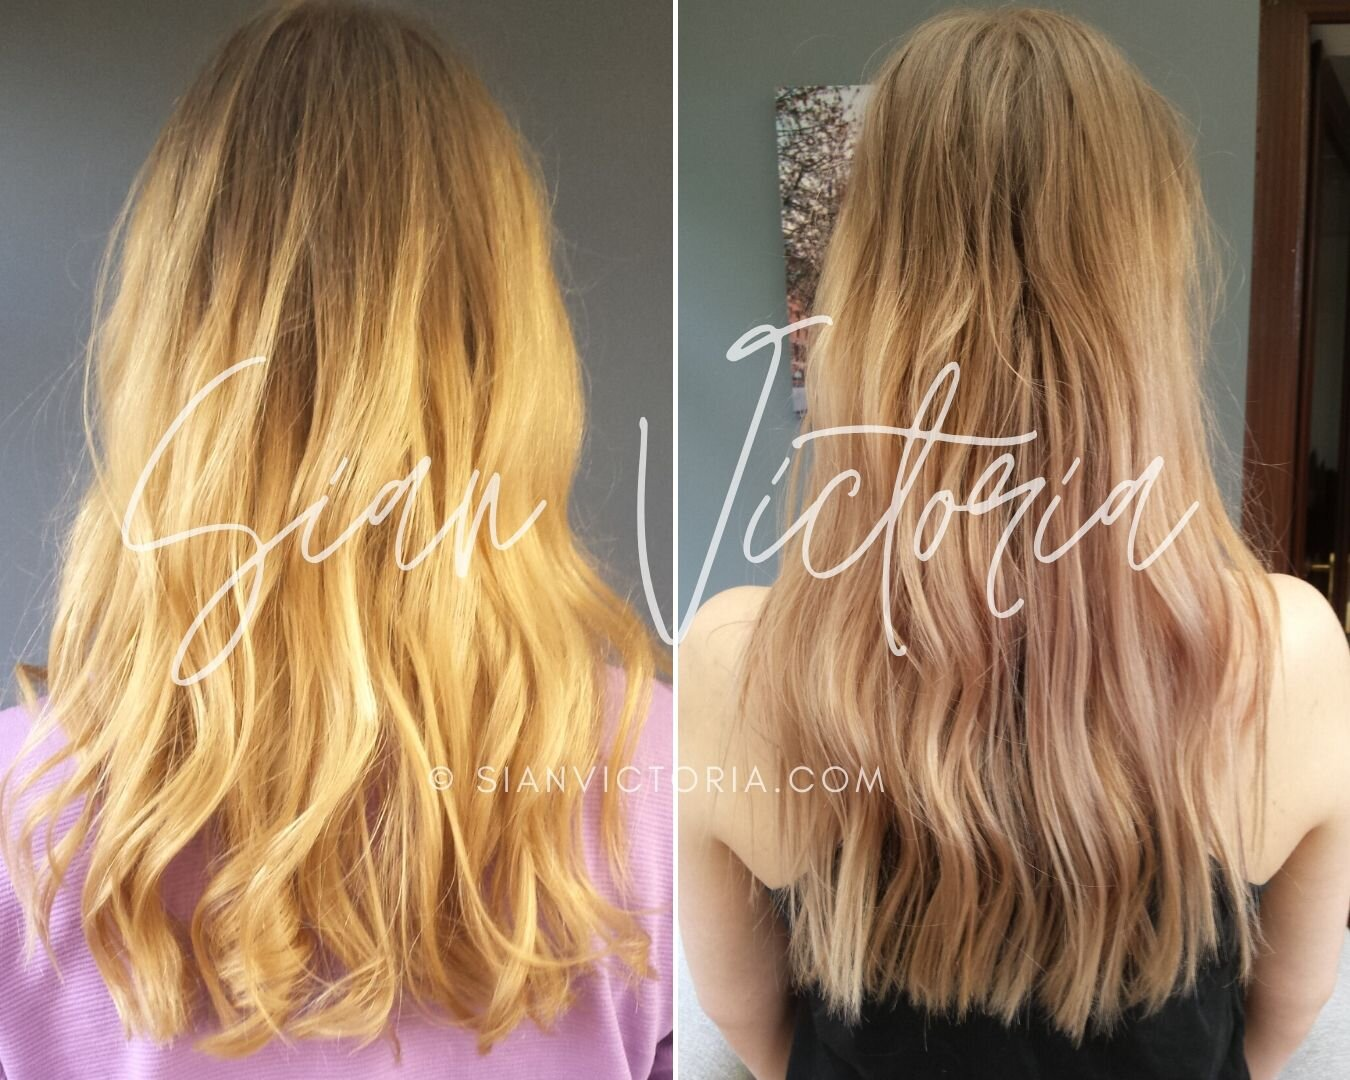 How To Get Rid Of Brassy Hair Before After Purple Toner Sian Victoria